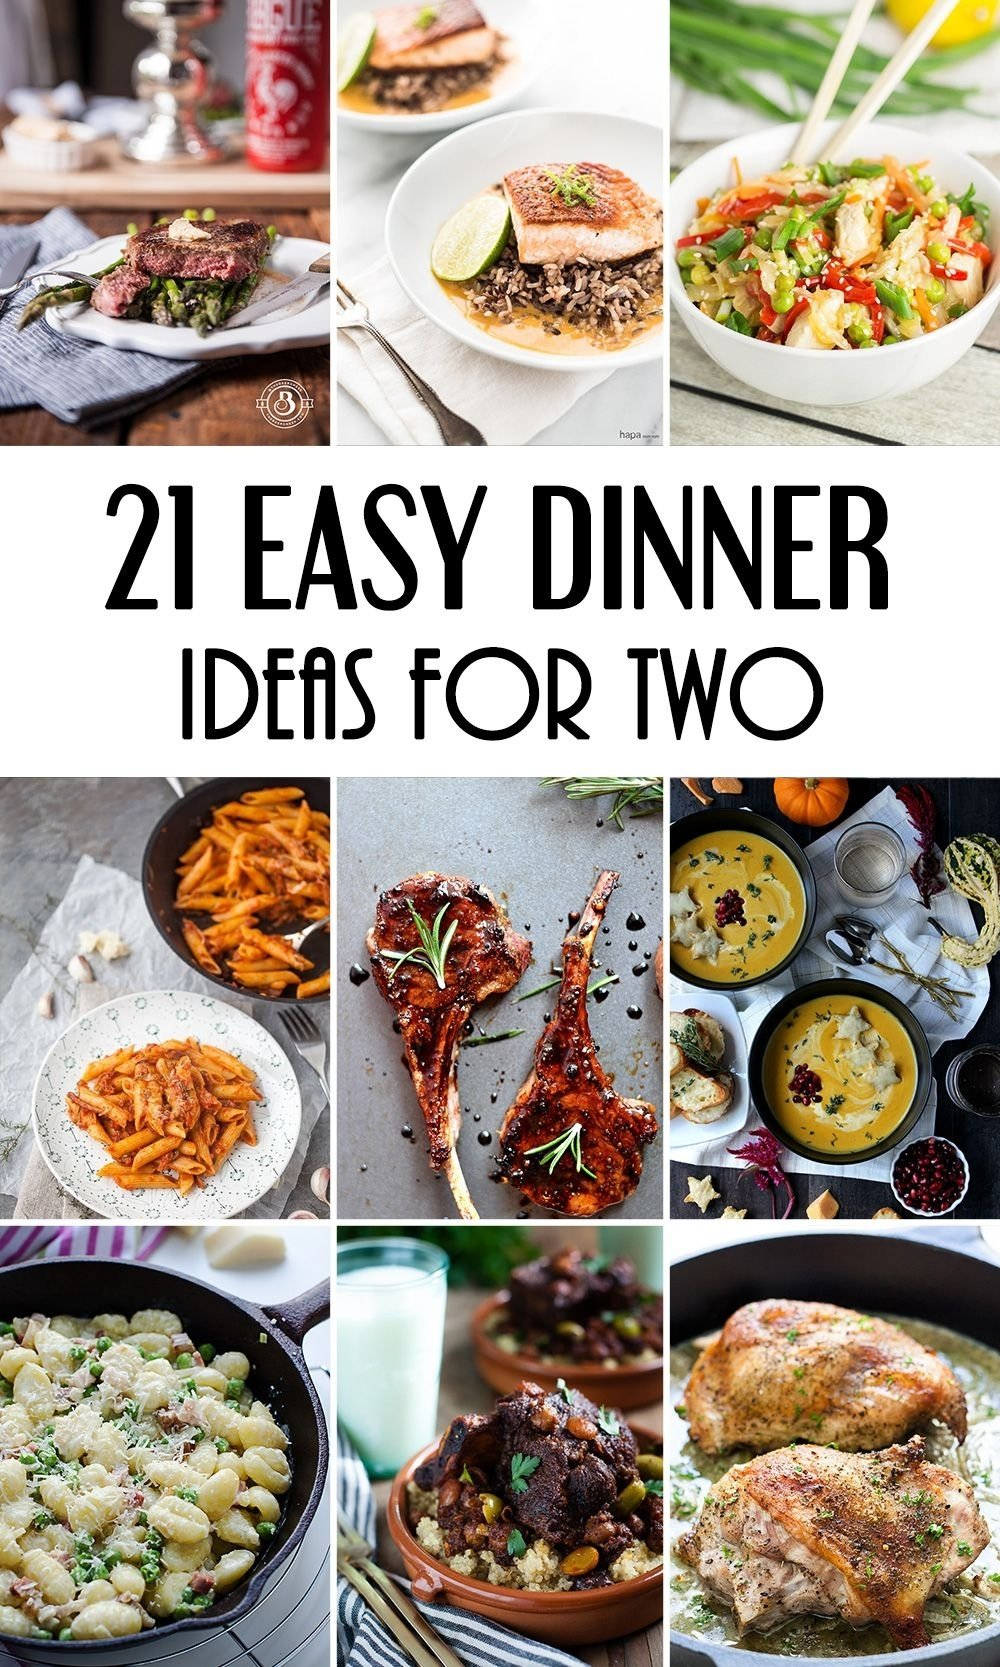 10 Fashionable Easy Dinner Ideas For One 21 easy dinner ideas for two that will impress your loved one 5 2020